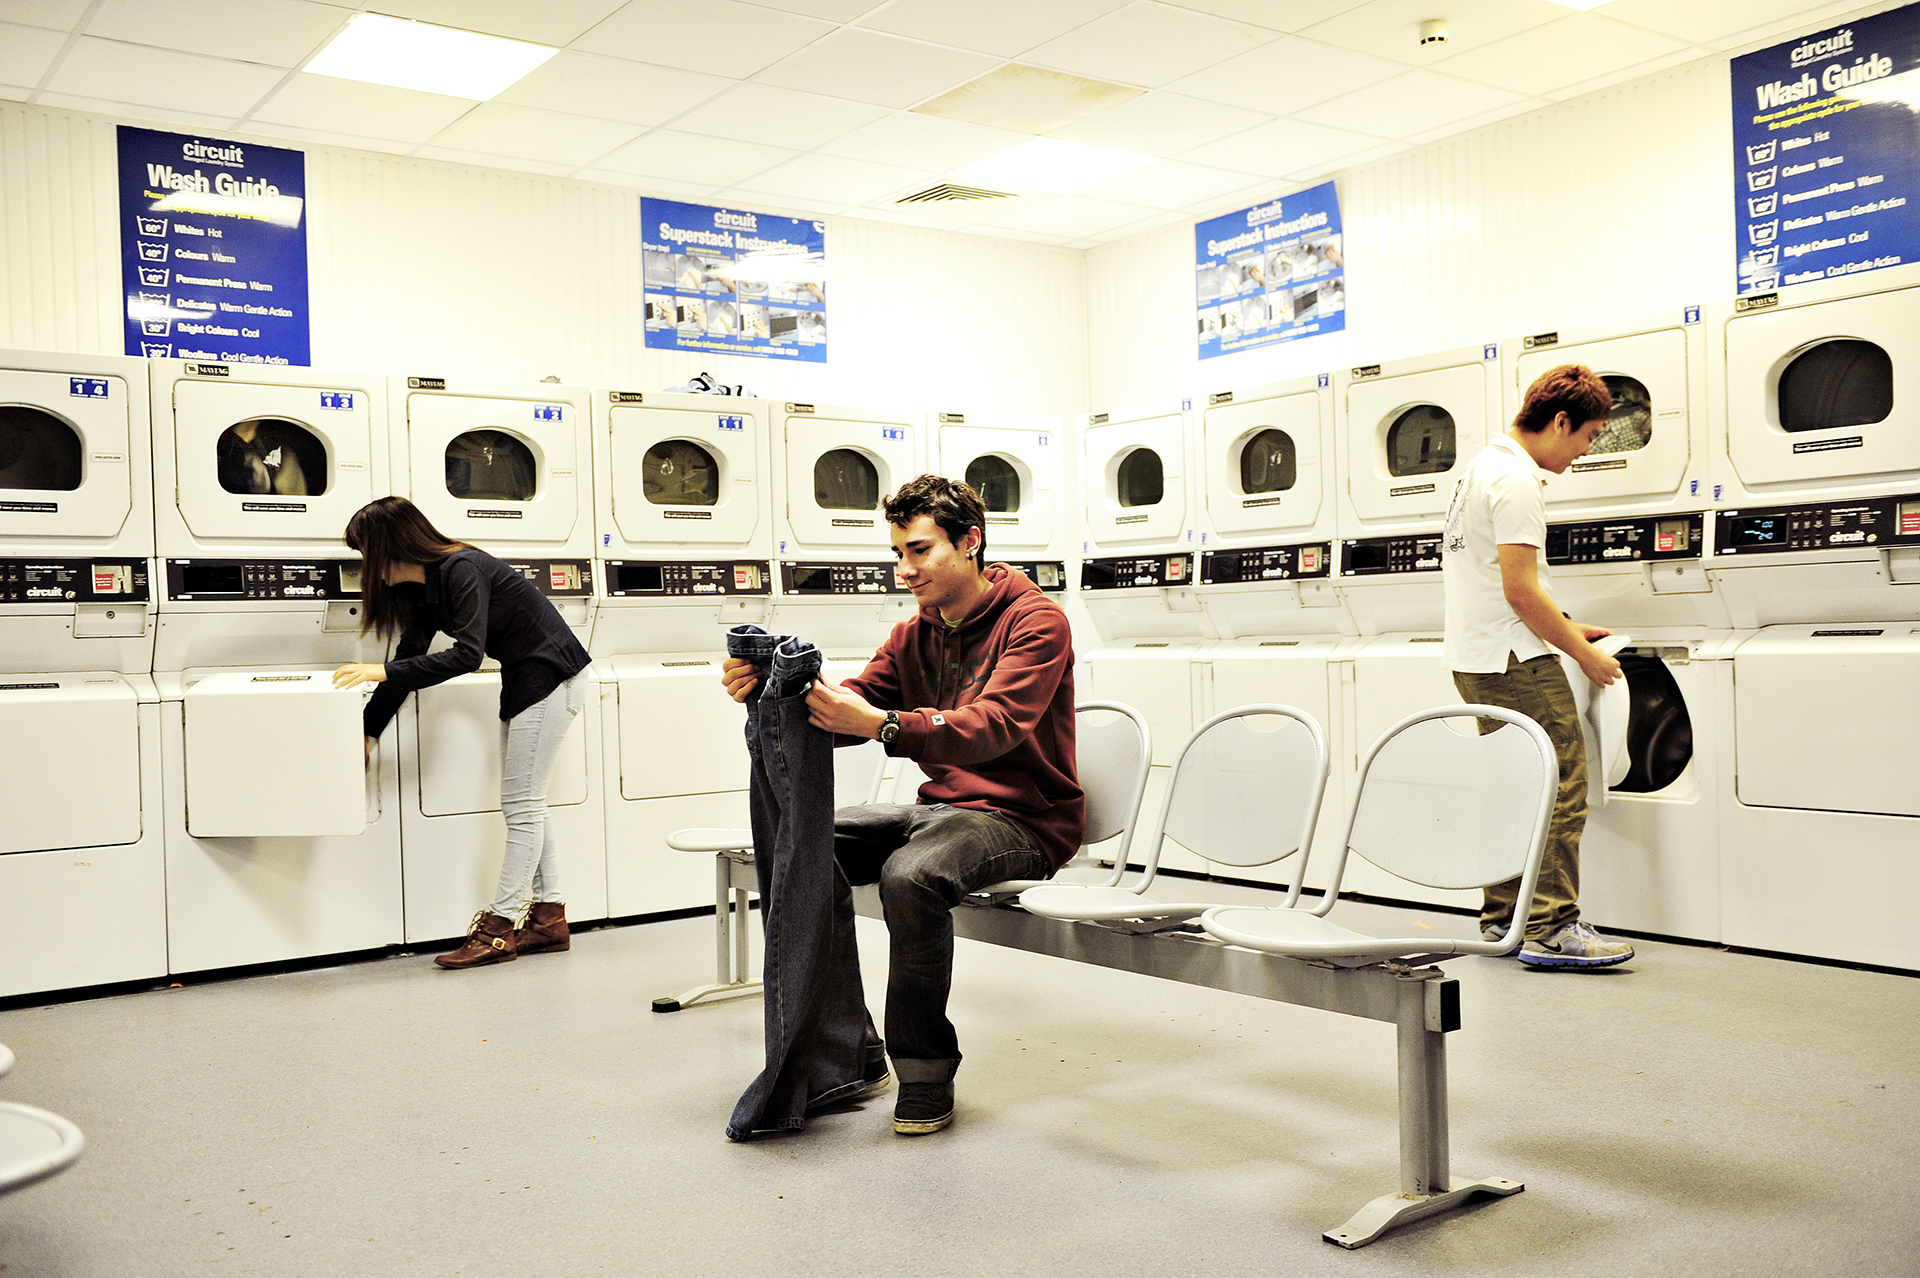 Students using shared laundry facilities in Elms BT9 student residences